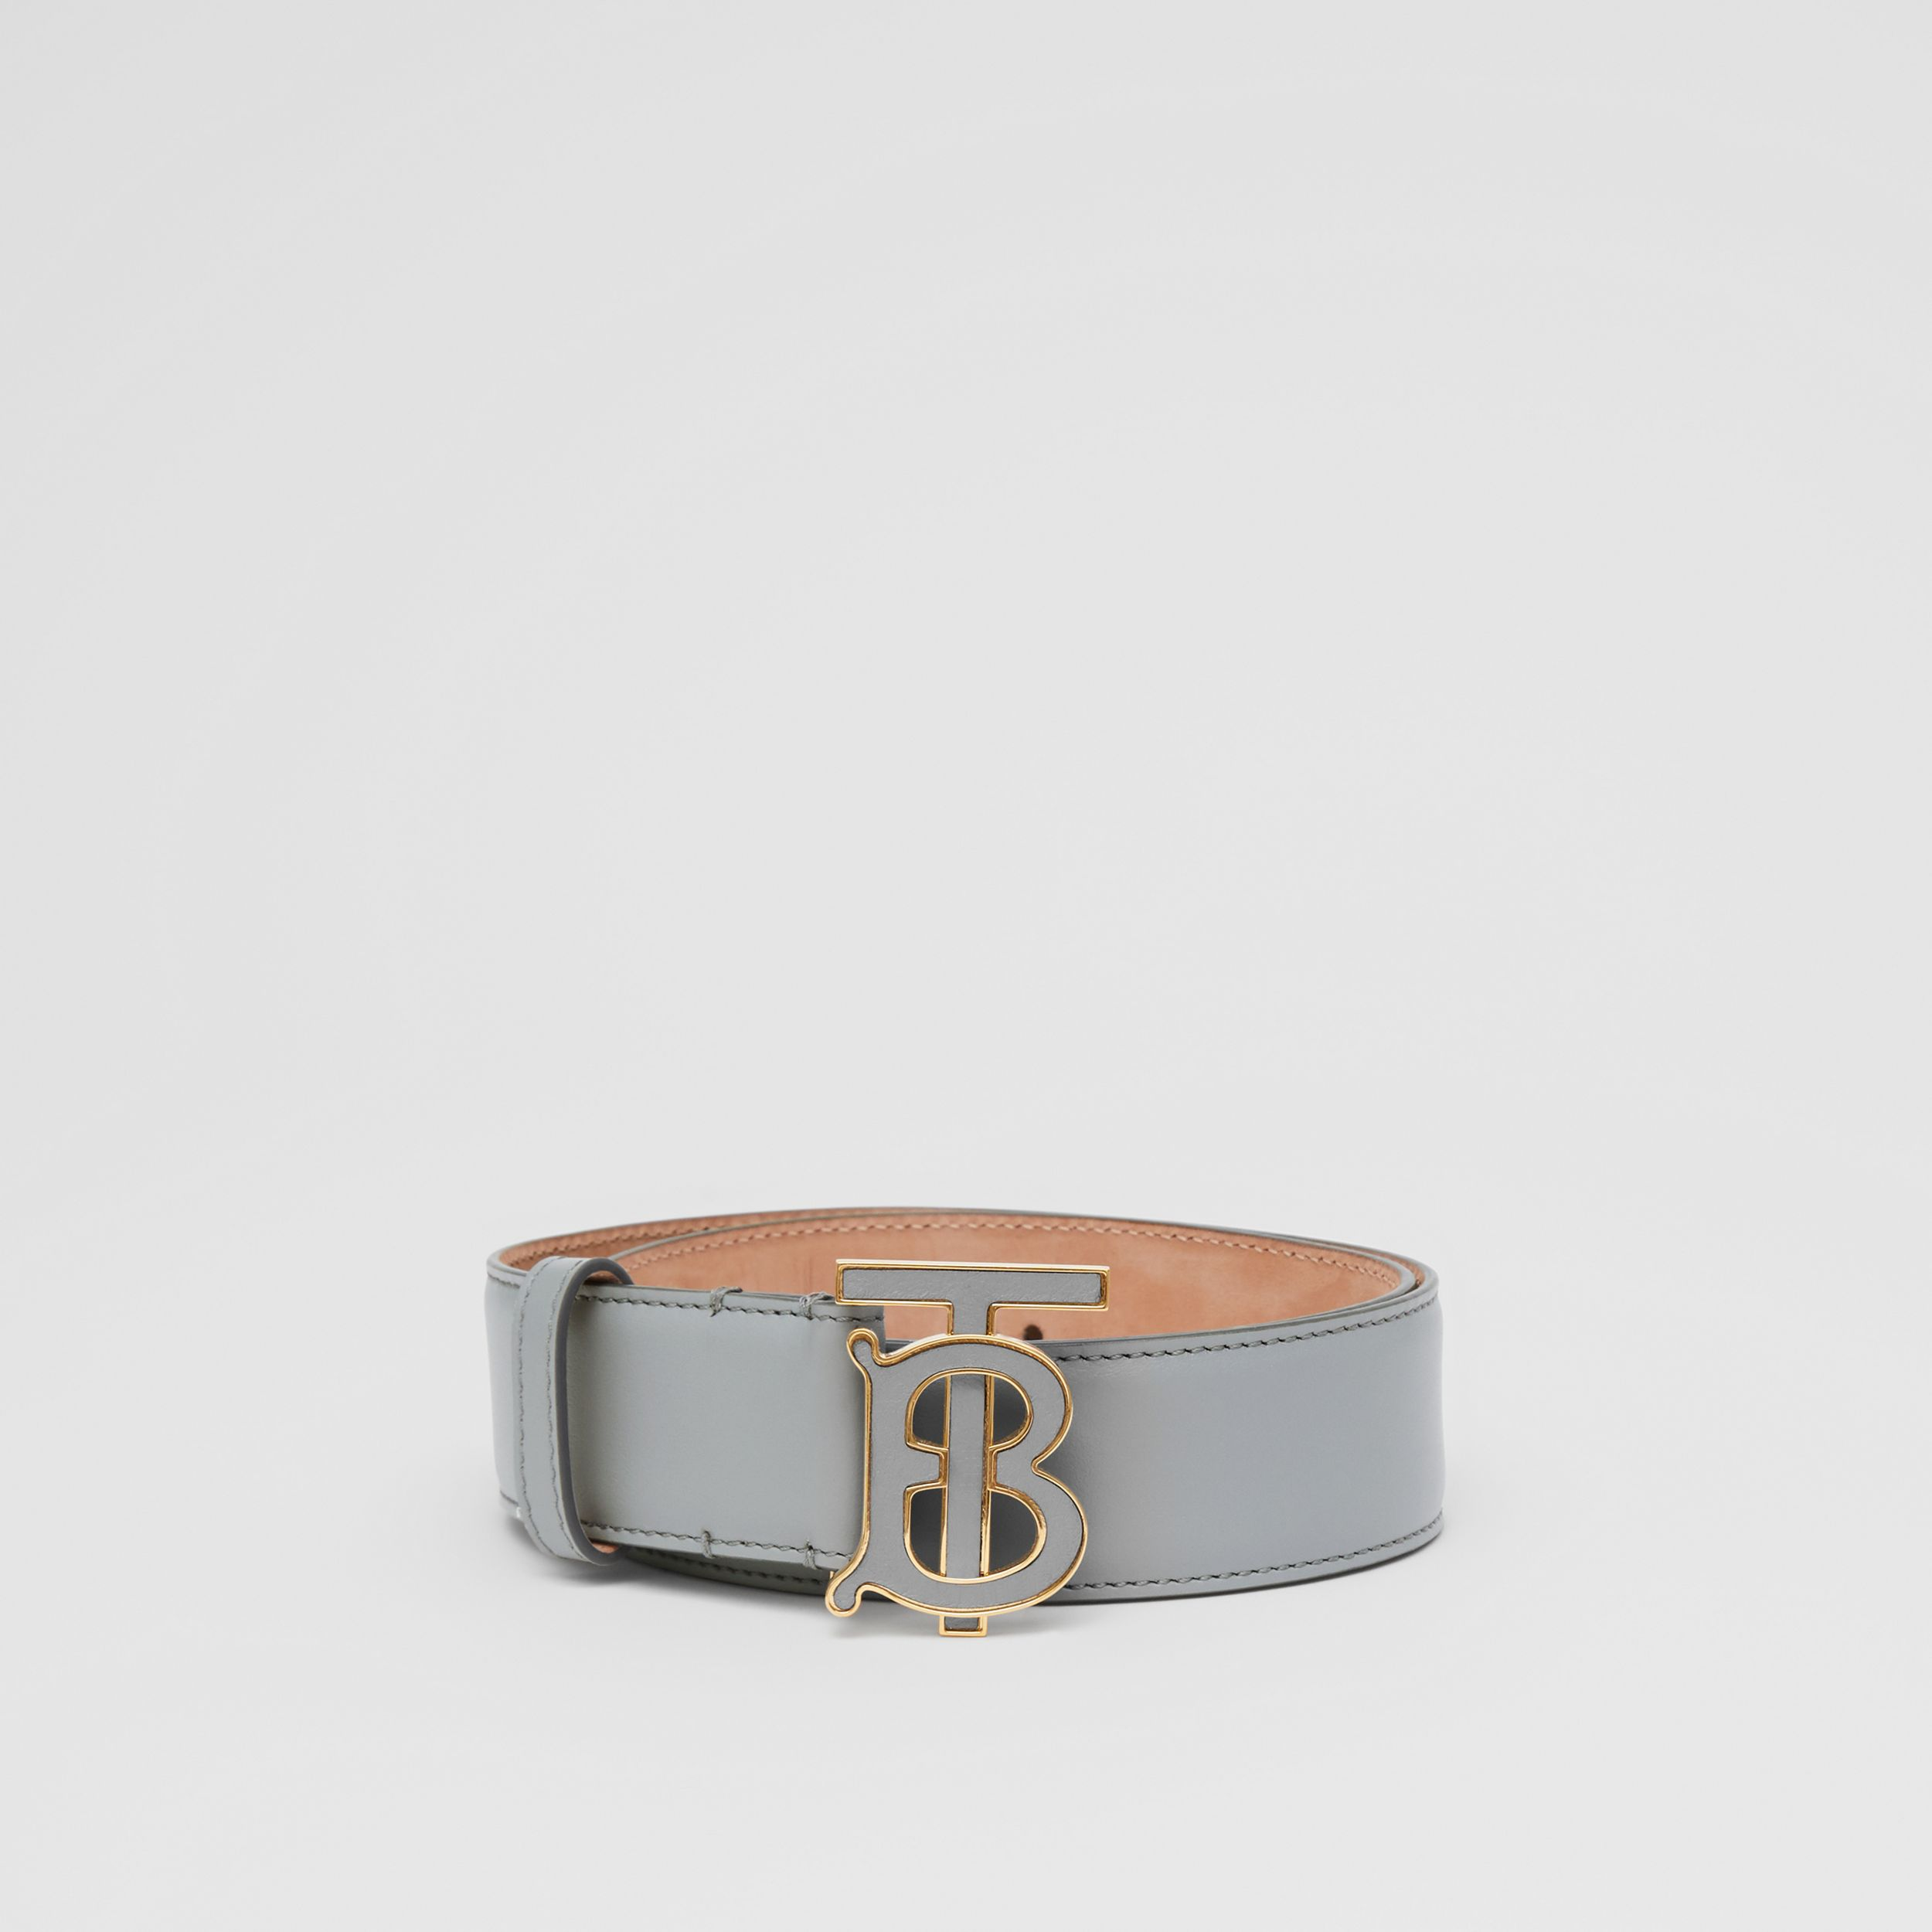 Monogram Motif Leather Belt in Cloud Grey | Burberry - 4